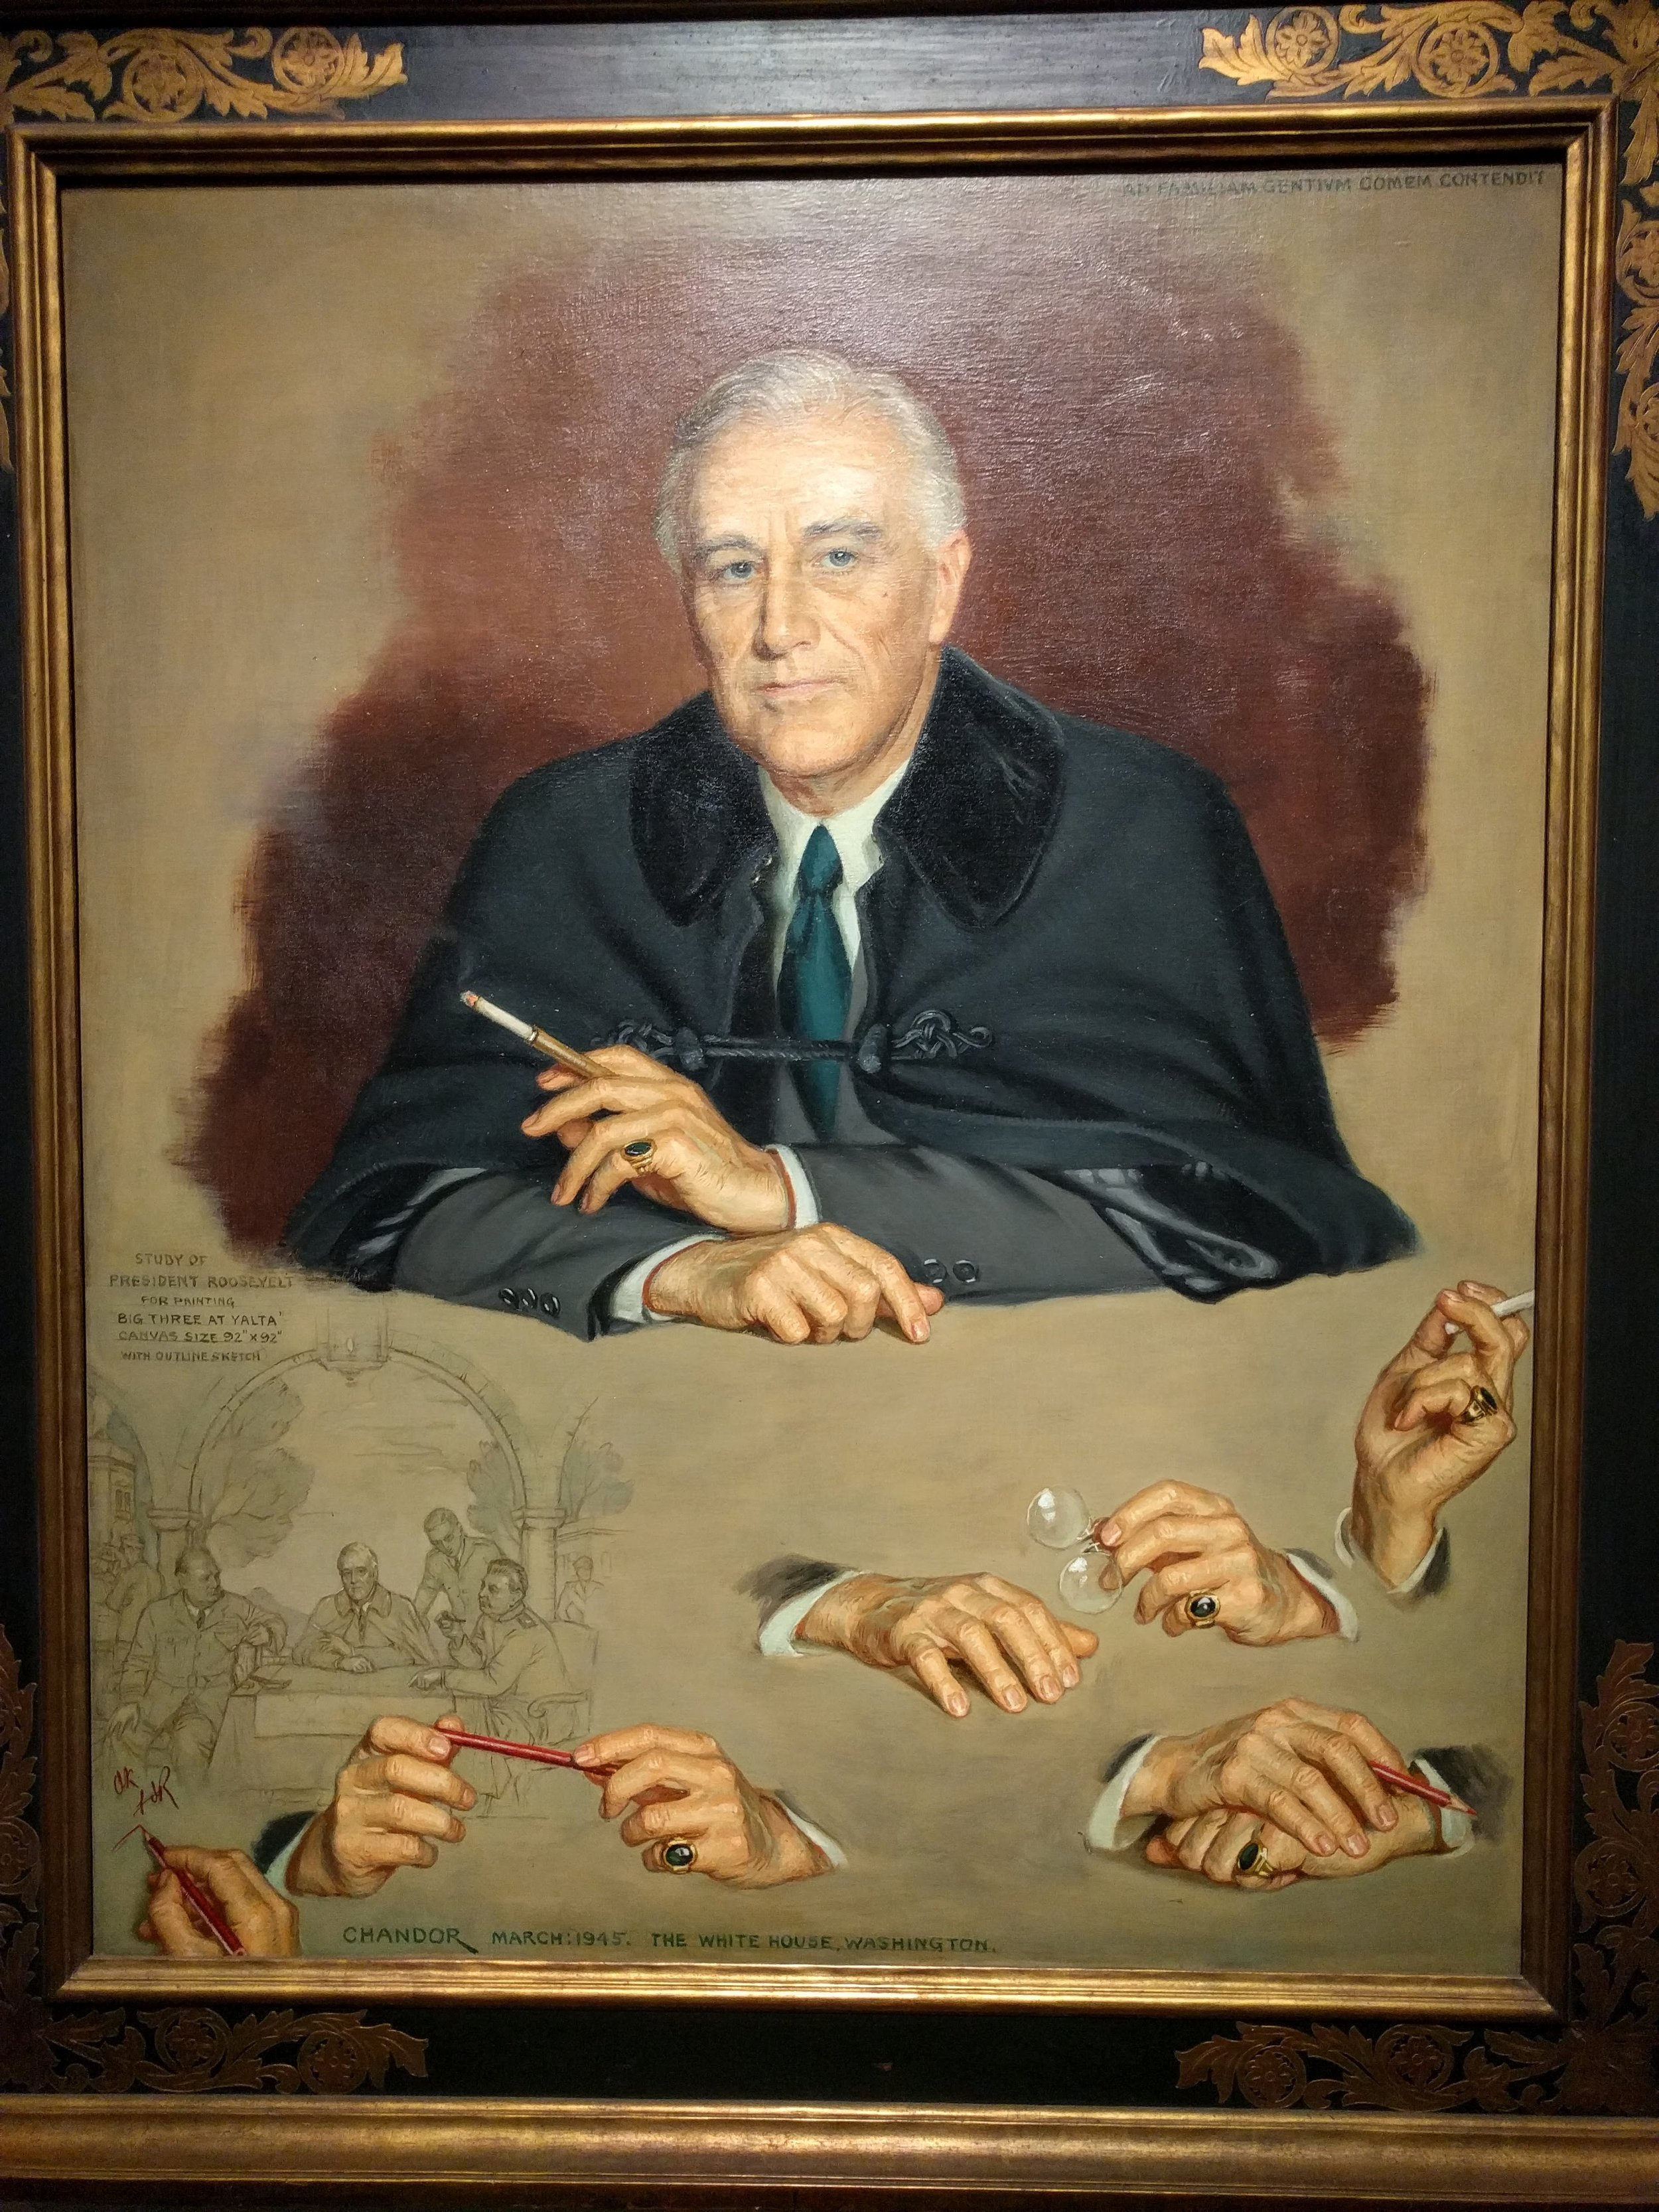 This was one of my favorite pieces because I'm mesmerized by the artist's (John Christen Johansen) hand studies of President Woodrow Wilson